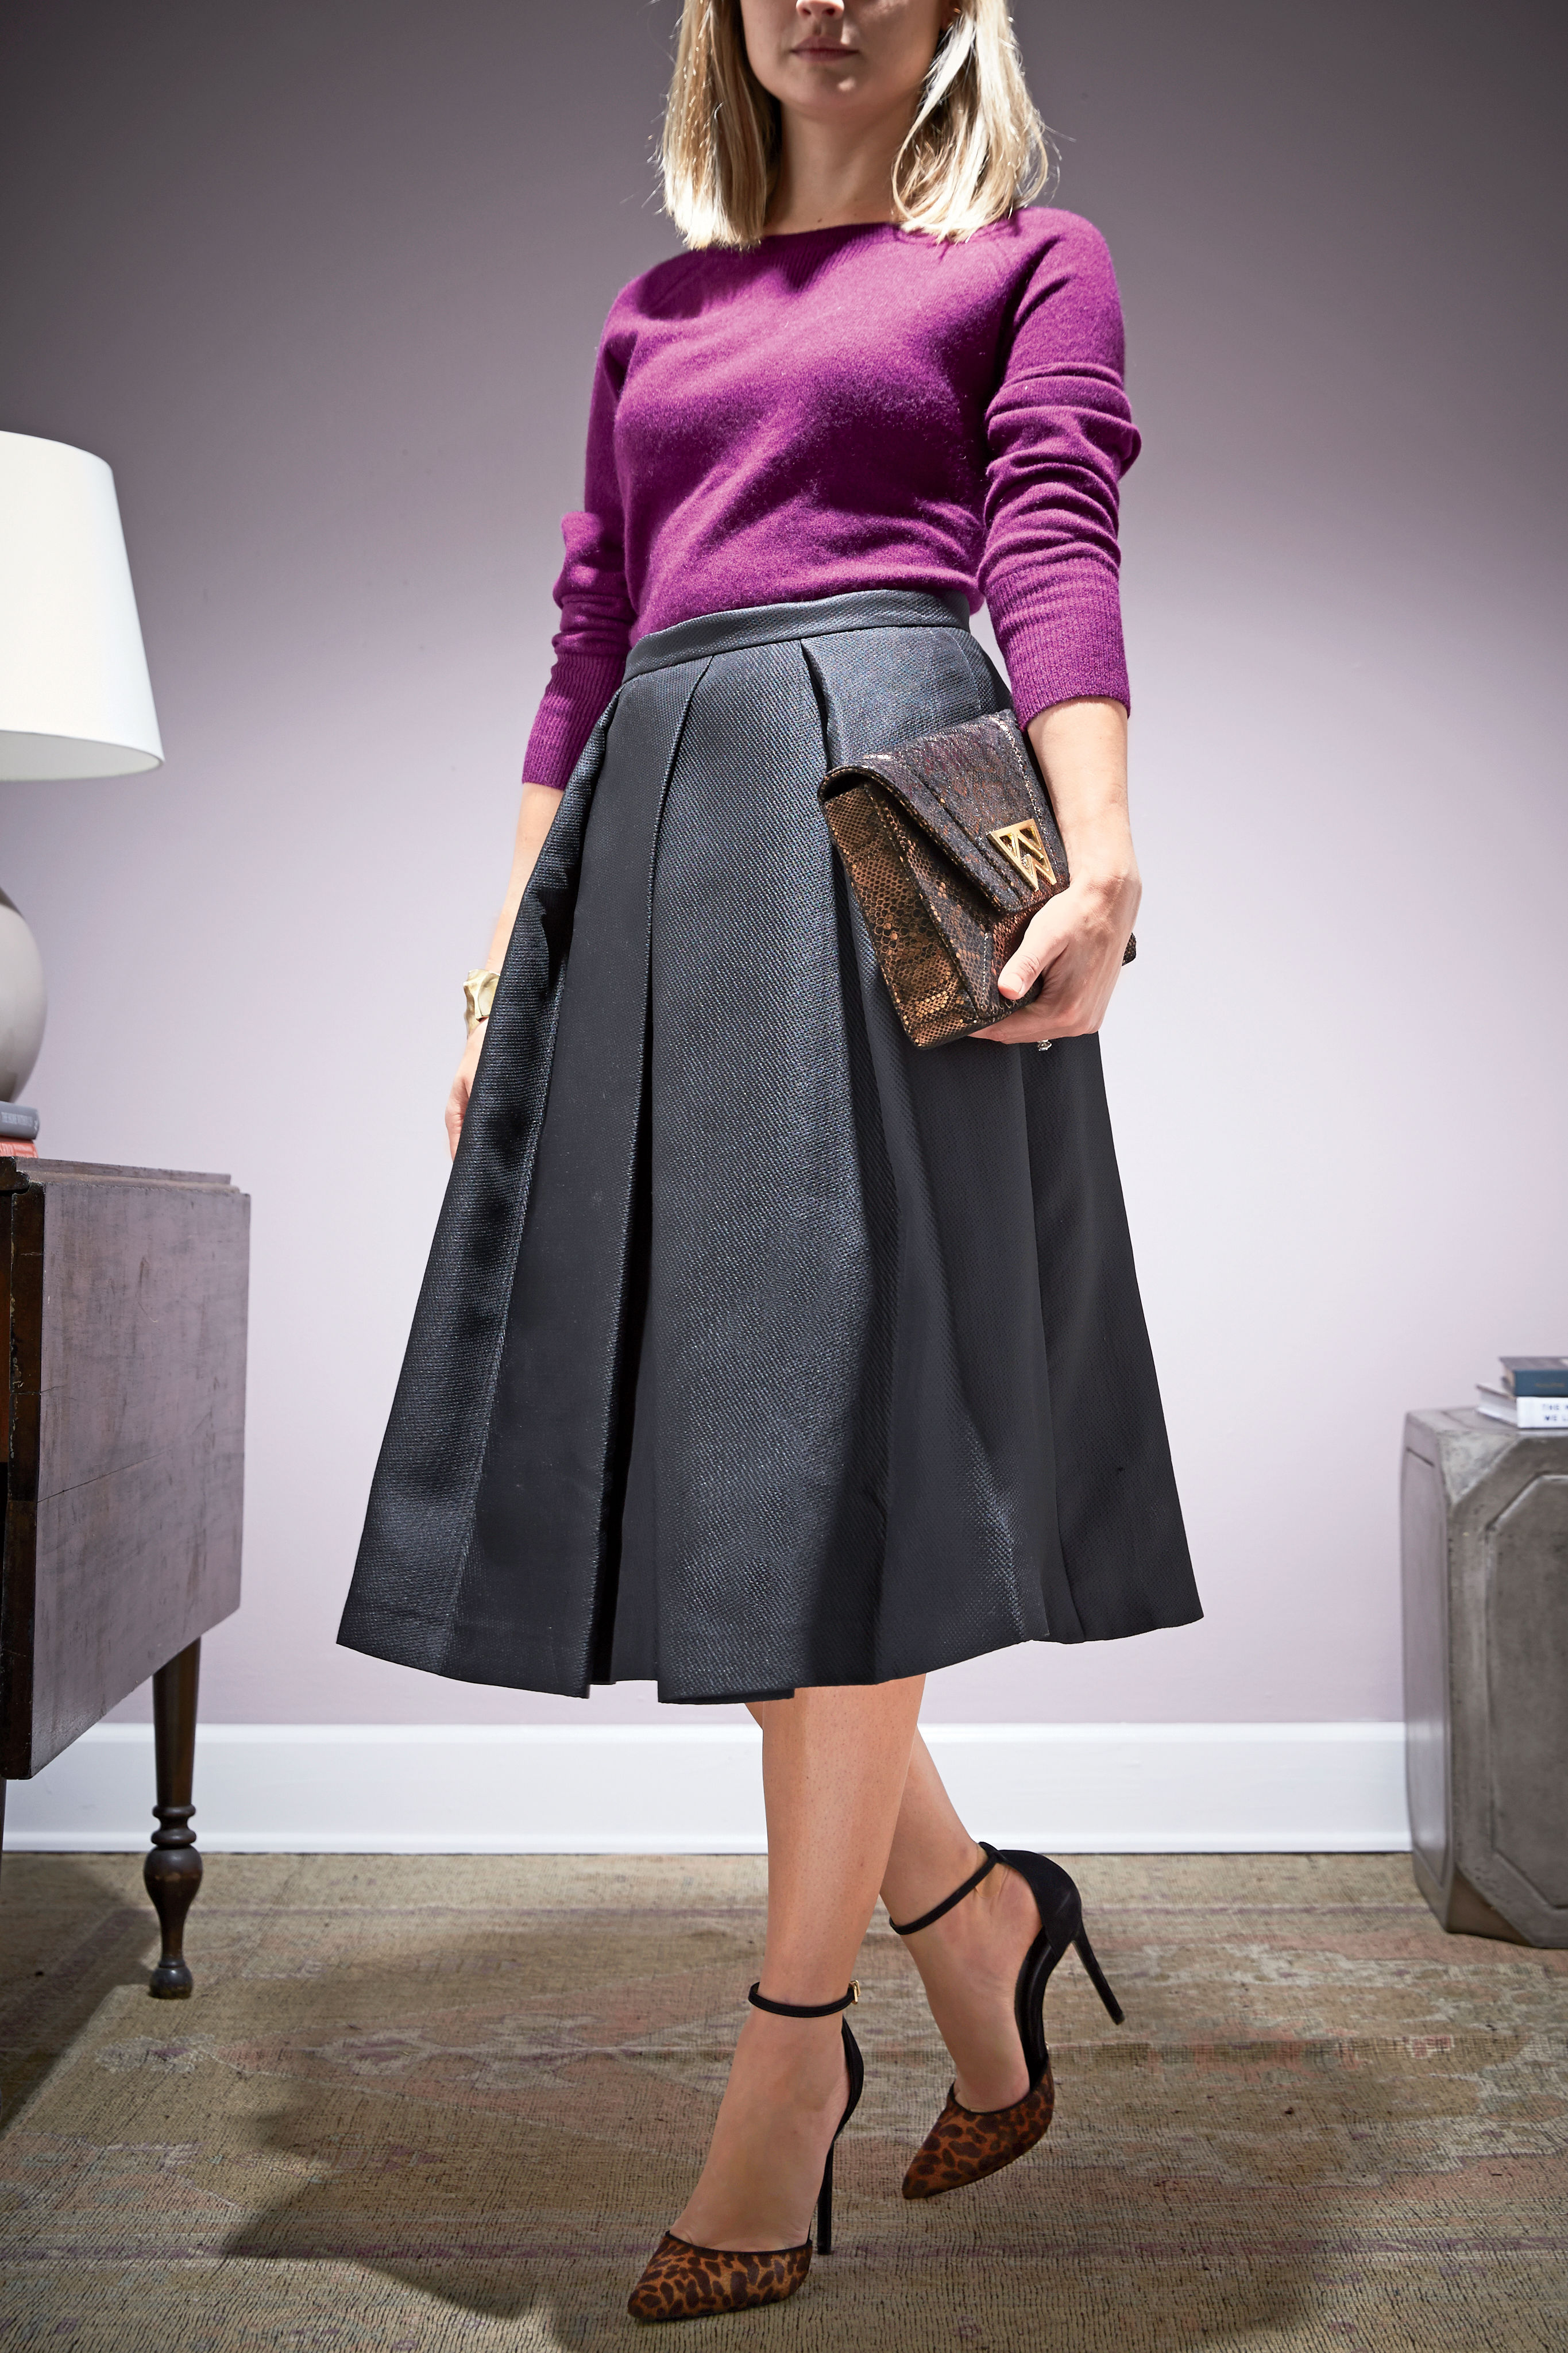 Instant Classic: The Midi Skirt